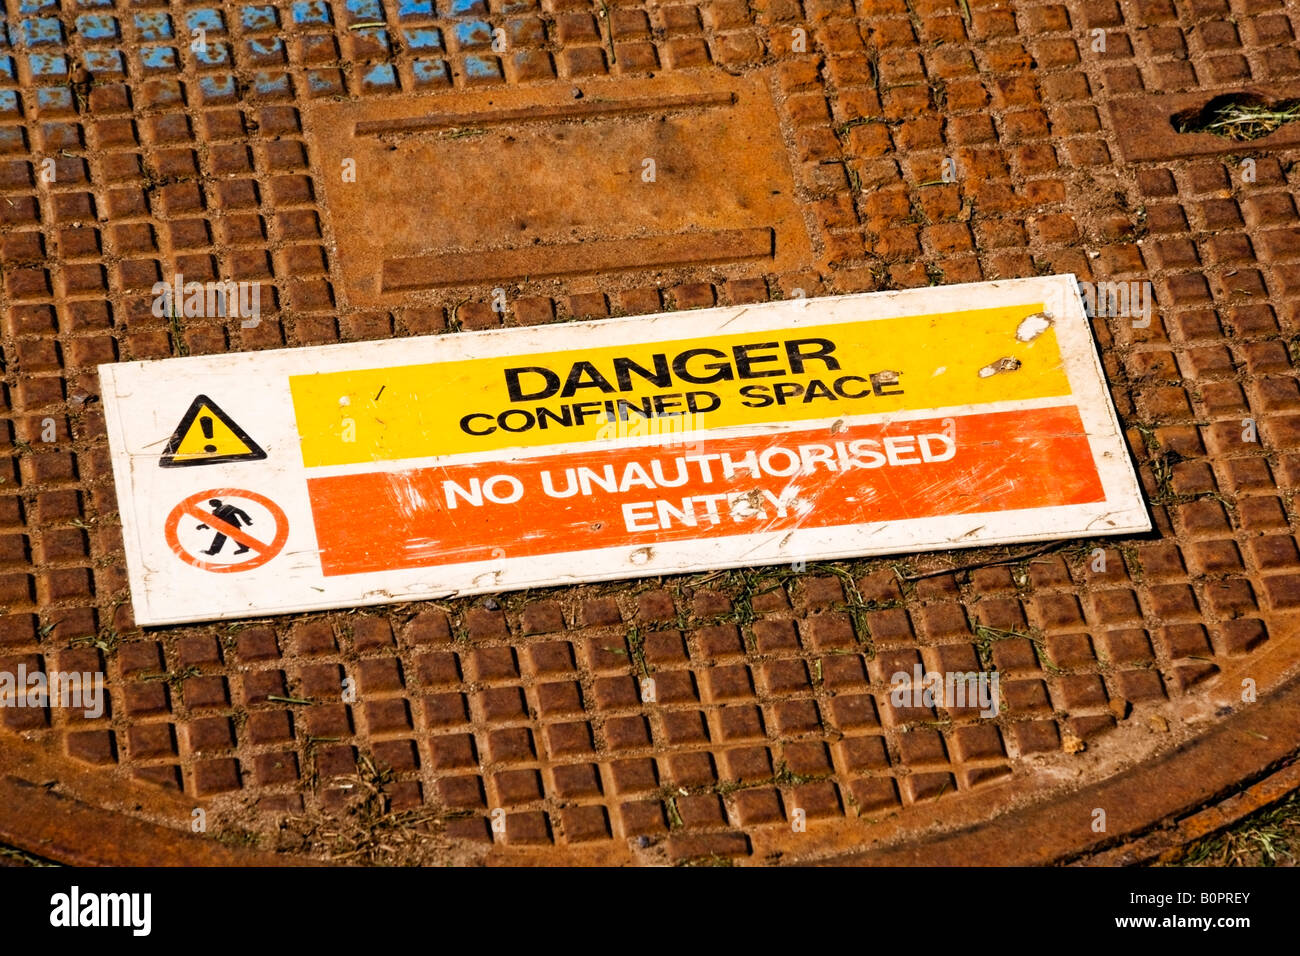 Restricted access manhole cover with warning sign - Stock Image